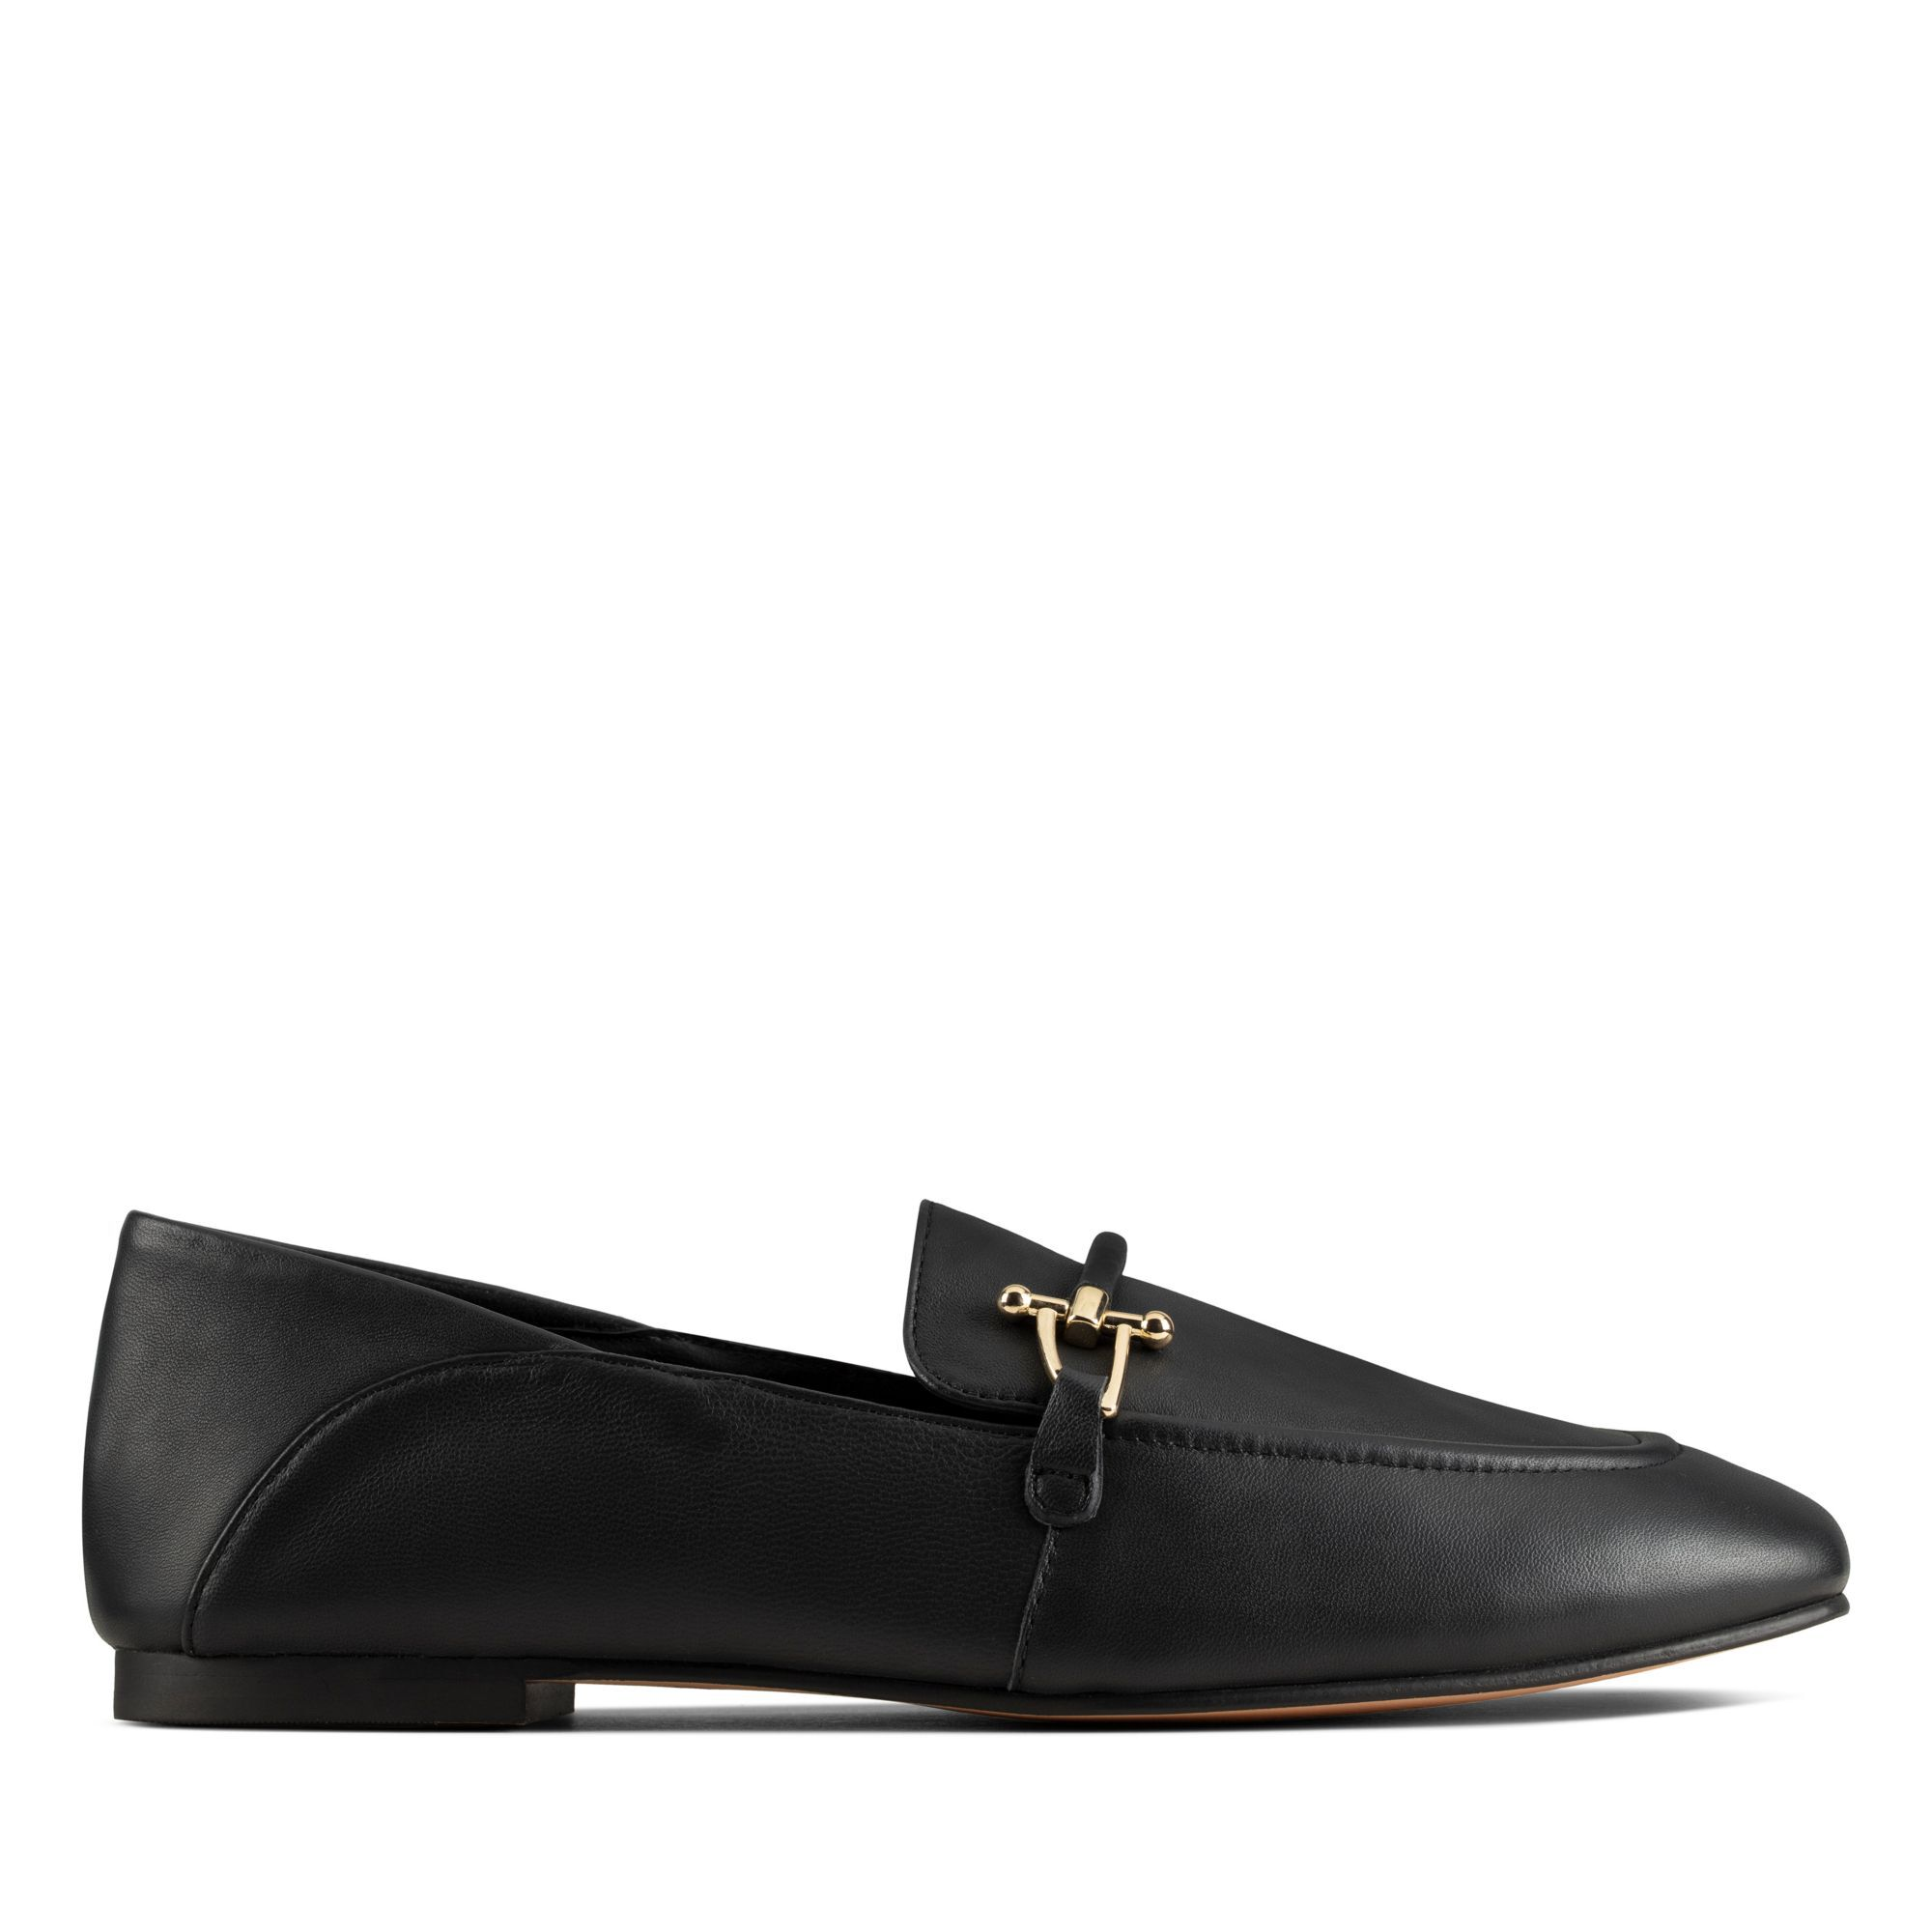 Leather Loafers - Pure2 Loafer   Clarks